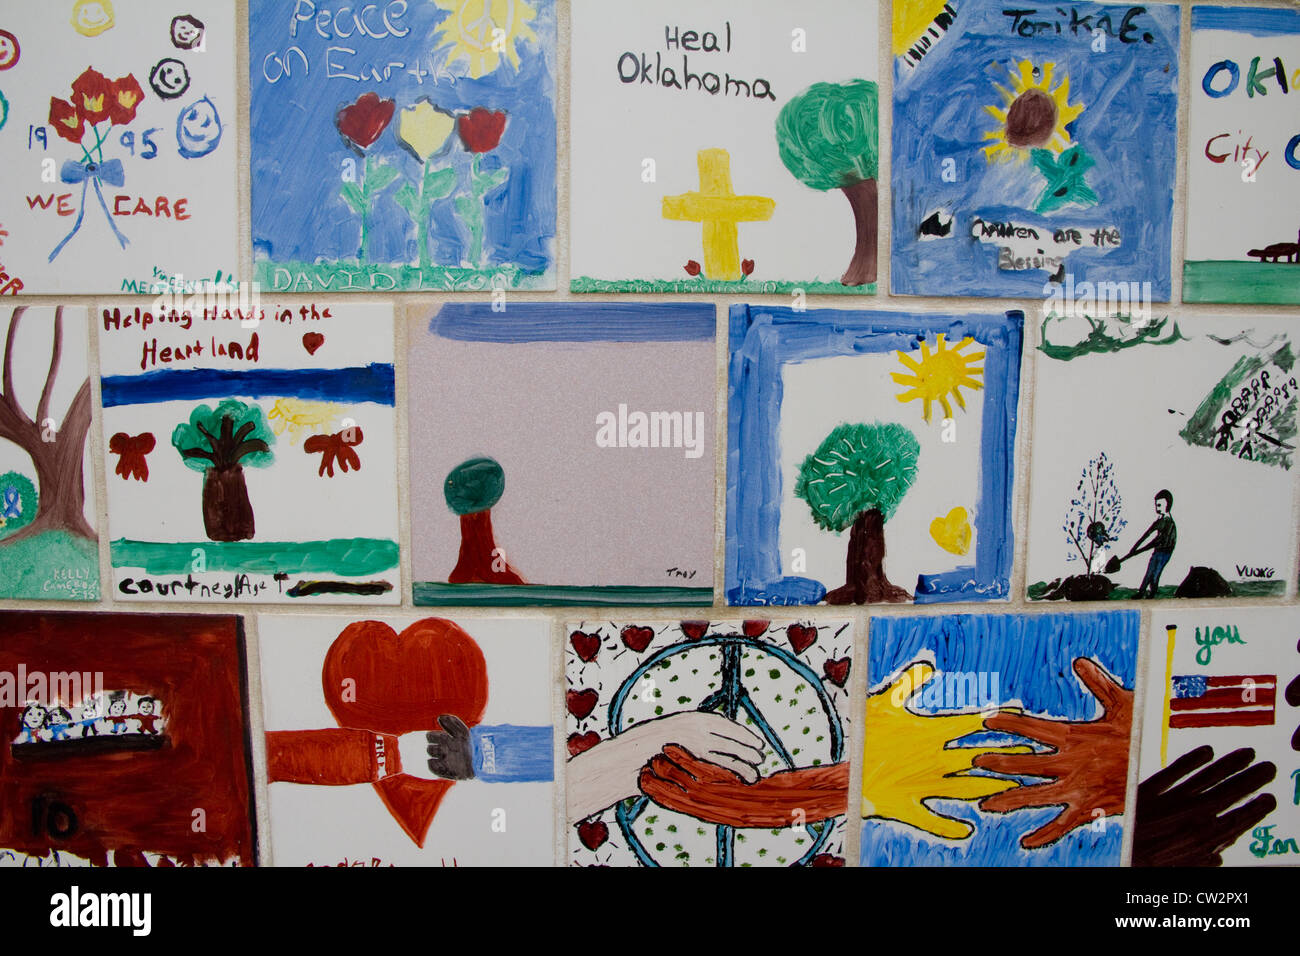 Wall of hand-painted tiles, Chidren's Area, Oklahoma National Memorial & Museum, in memory of tragic 1995 bombing, Stock Photo